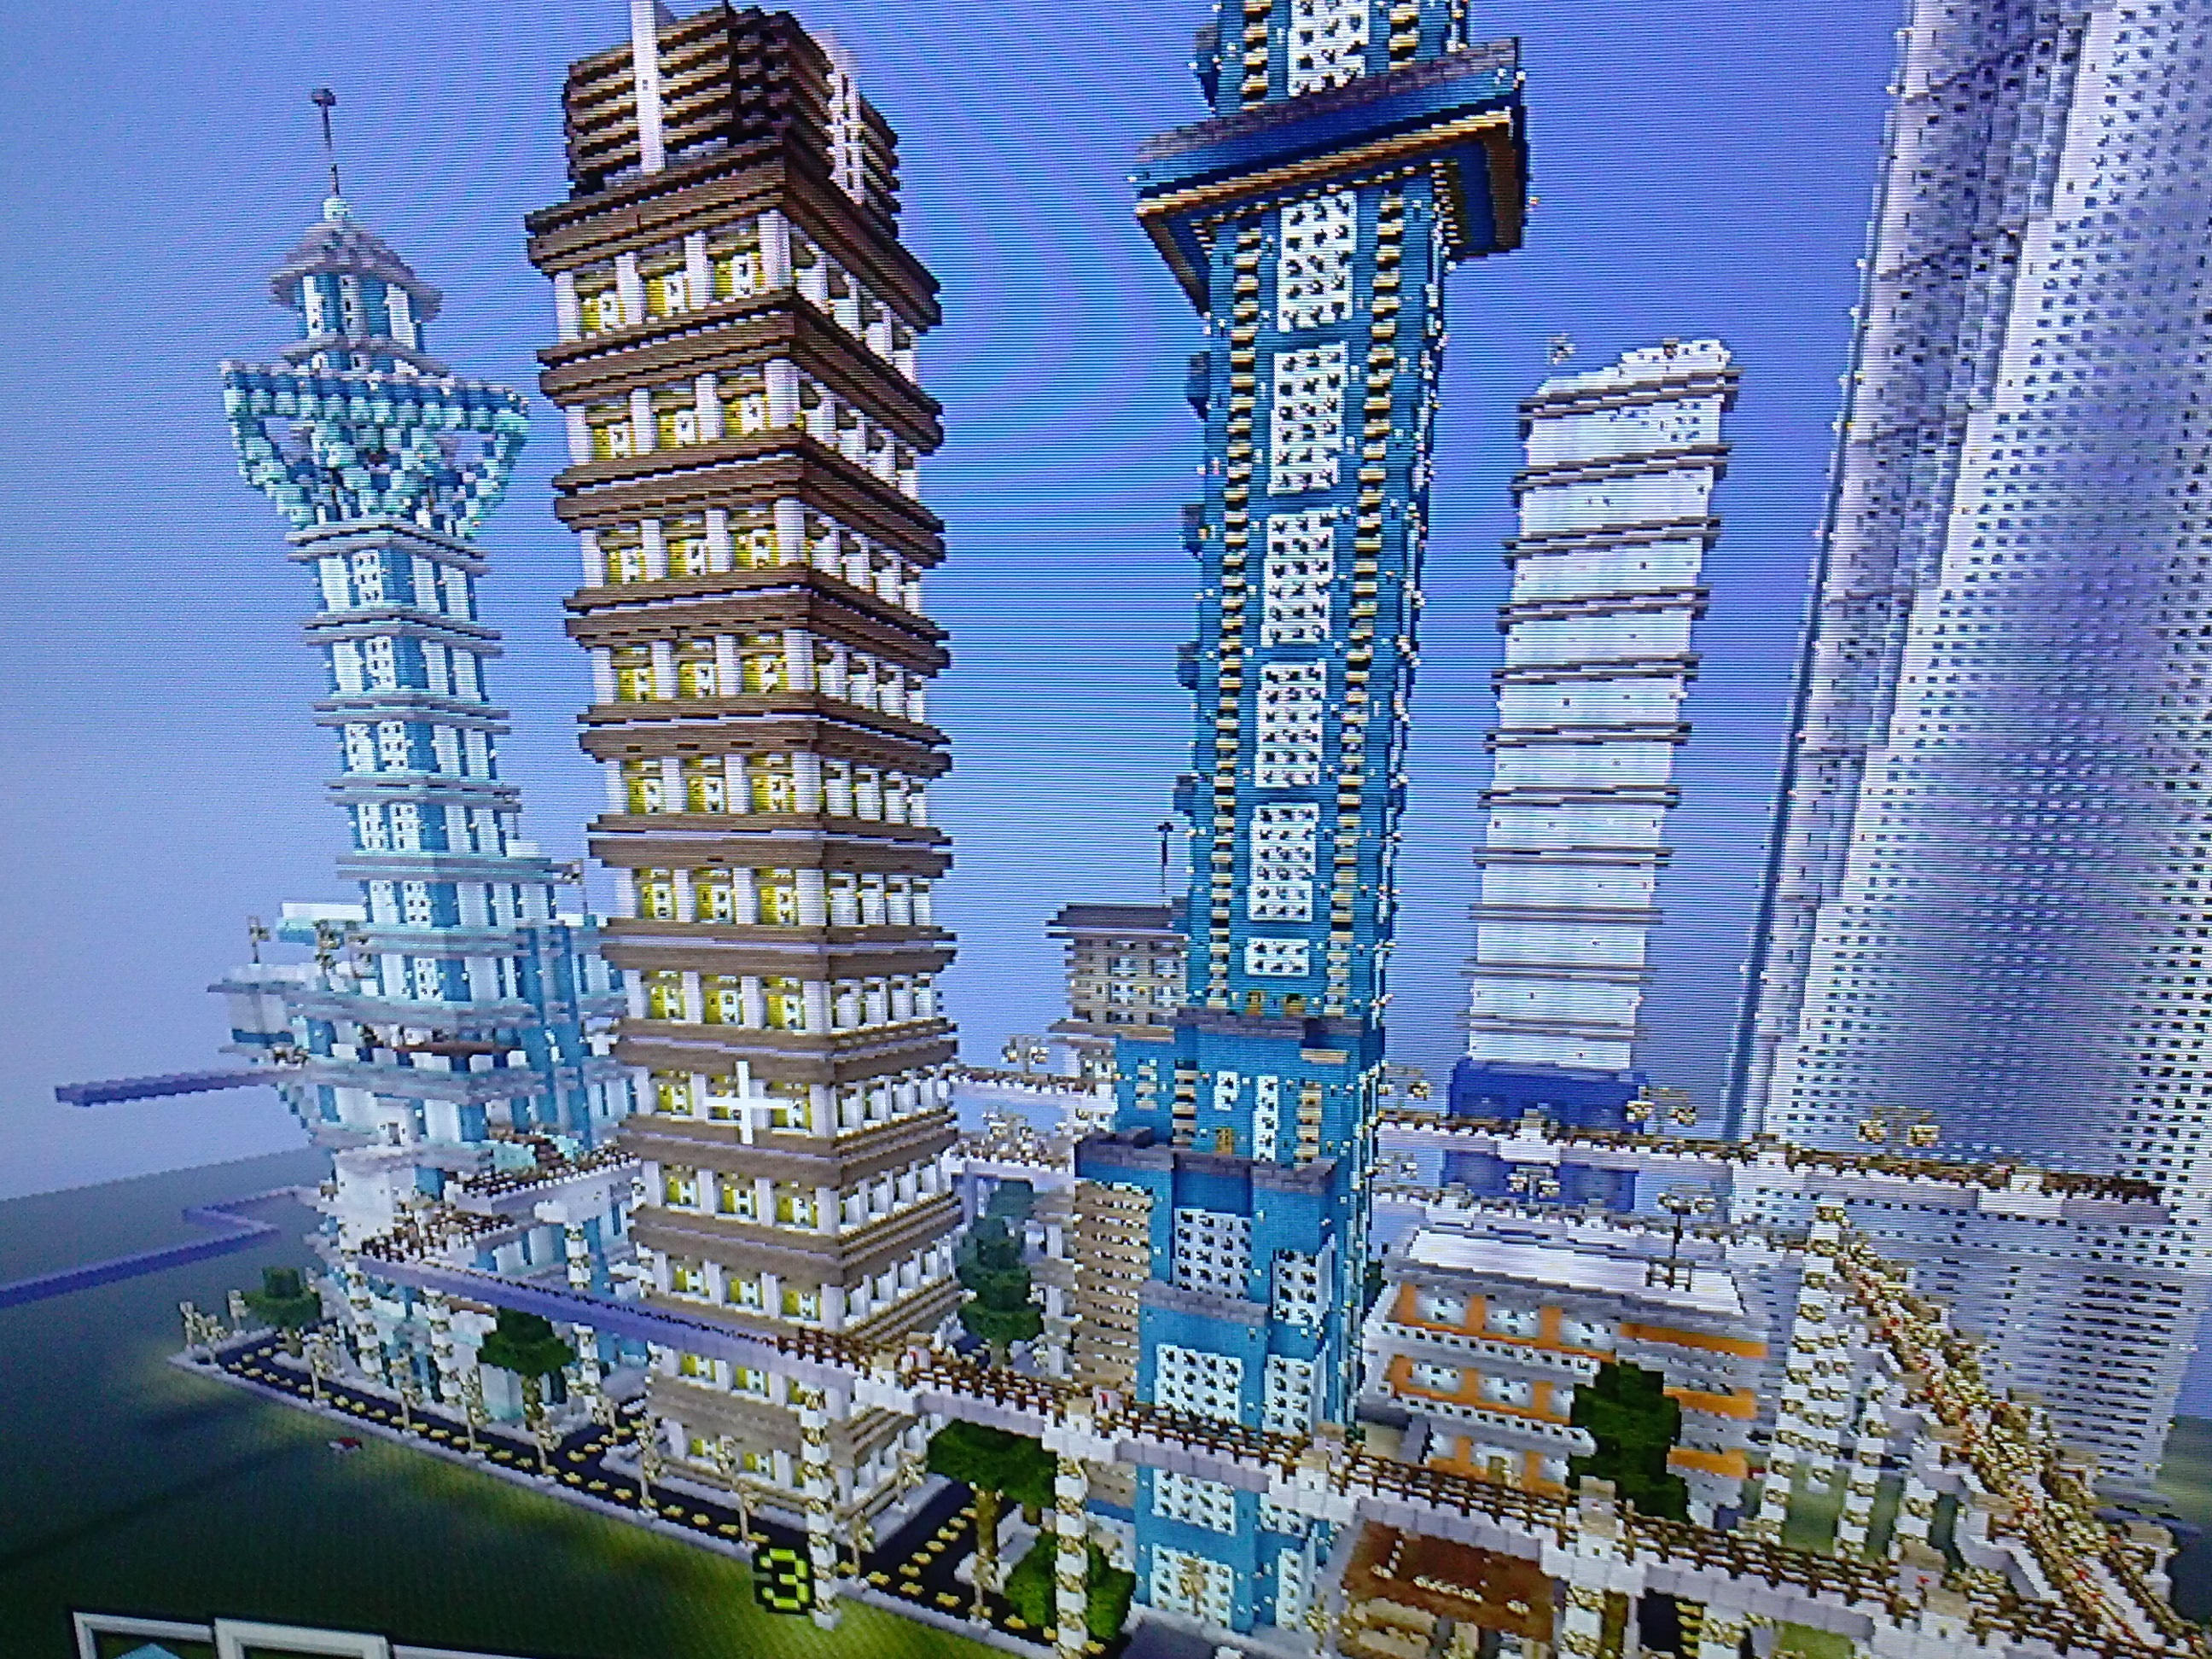 Minecraft City Builds Any Comments